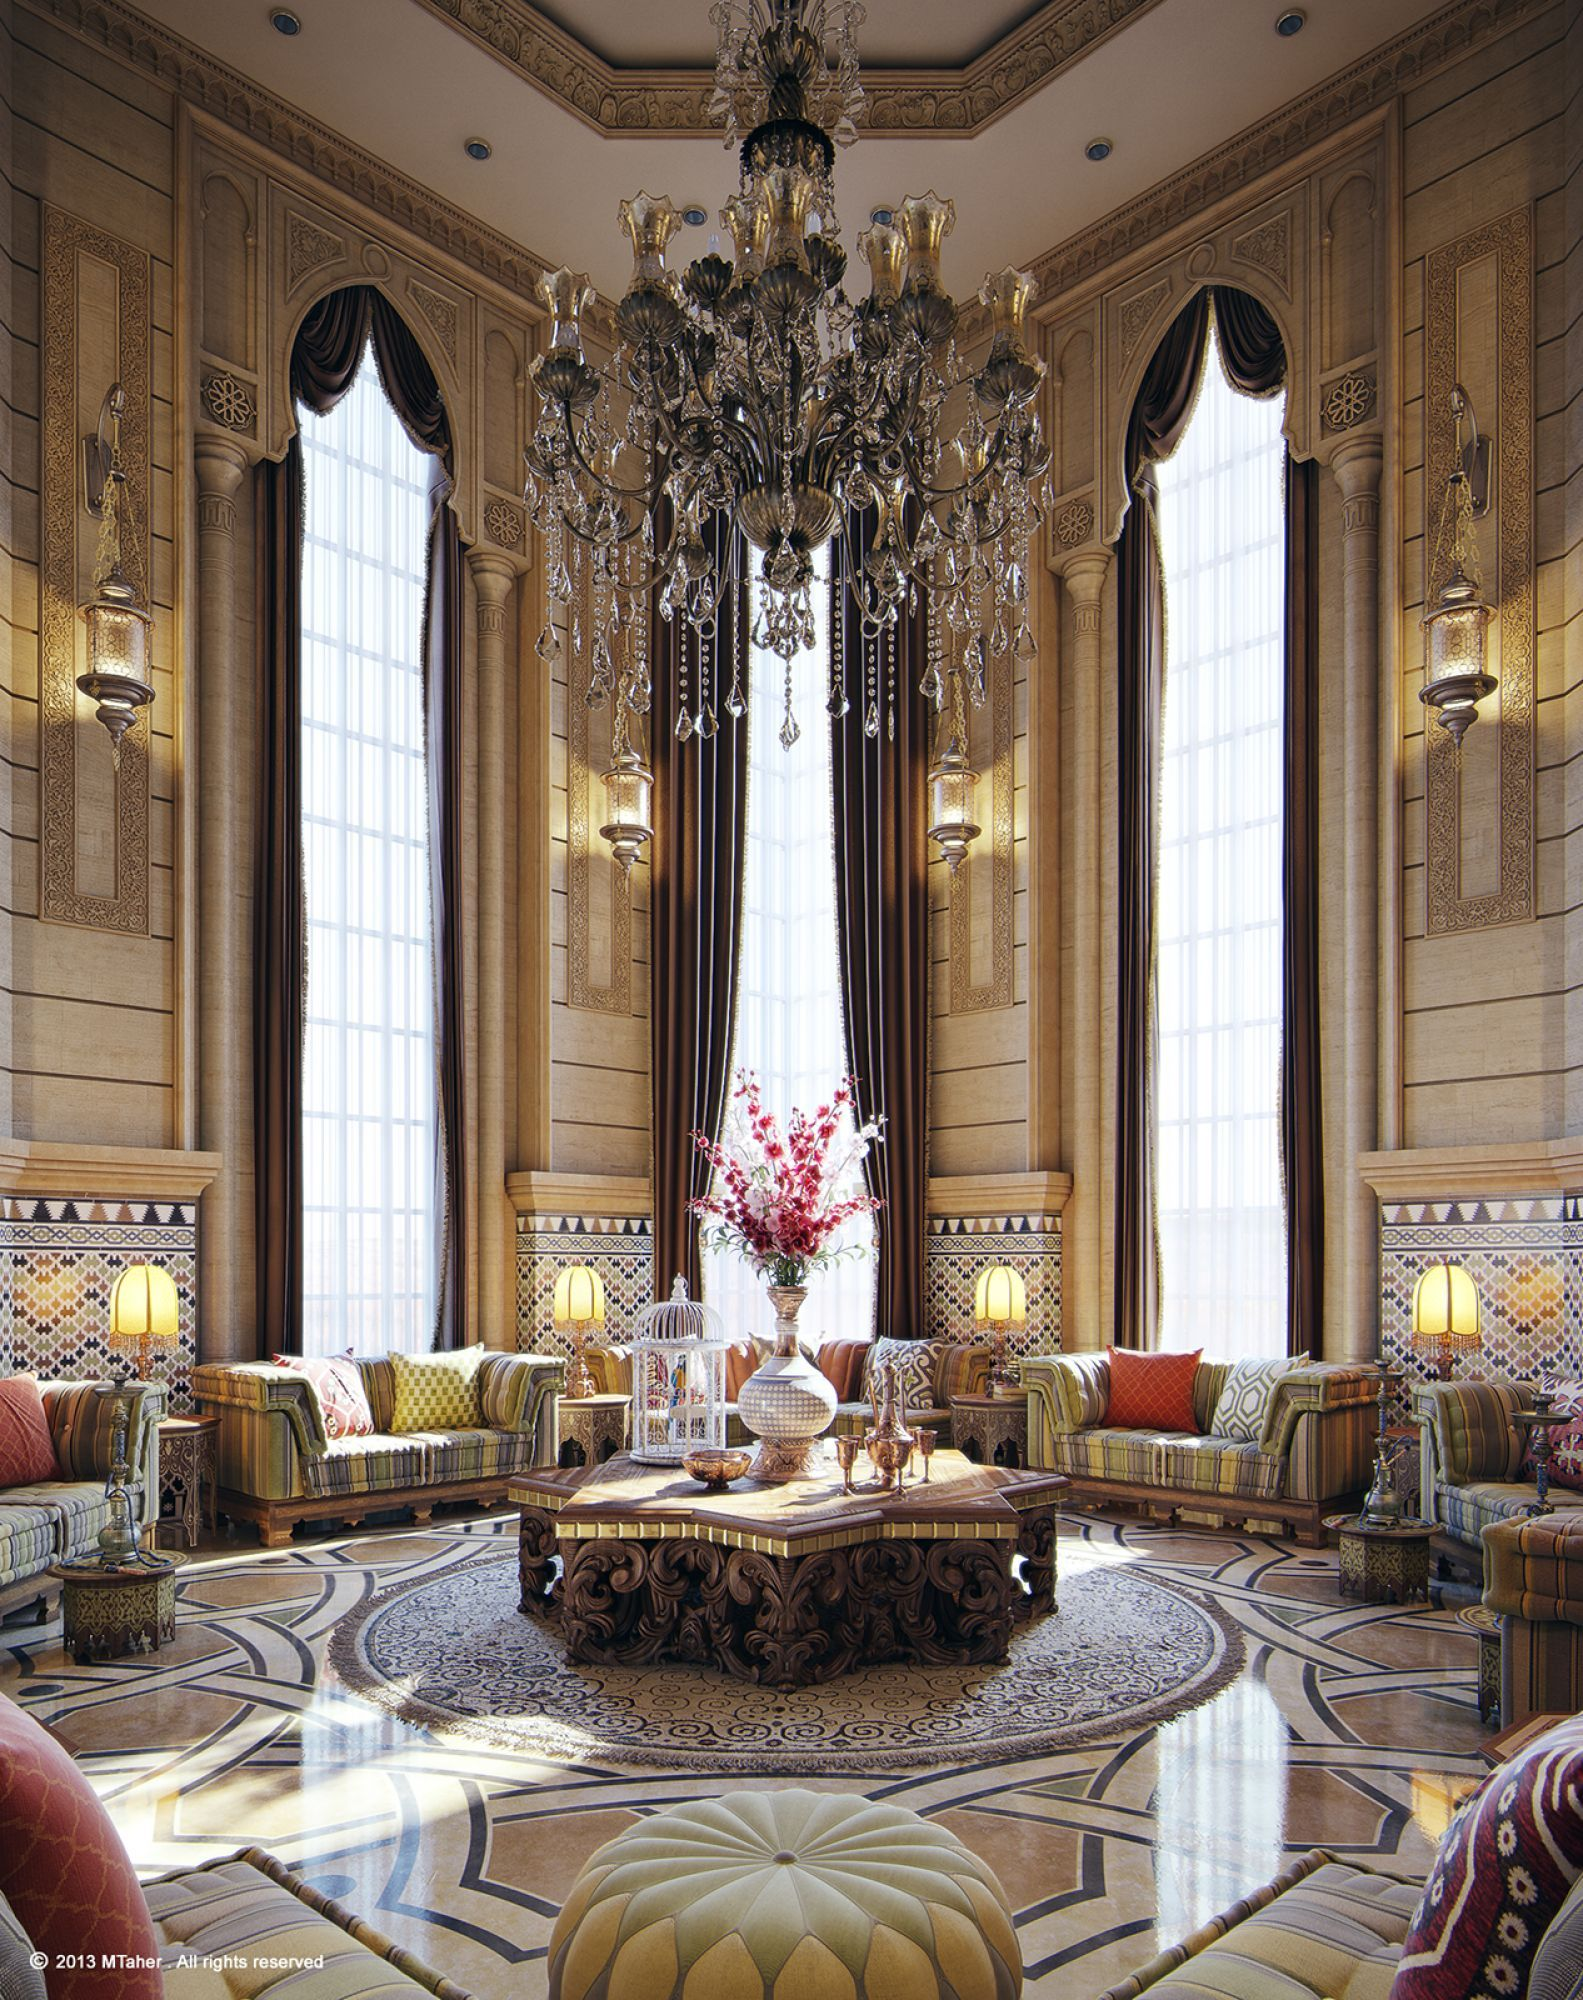 One Of My Latest Interior Work Commissioned Job Location Doha